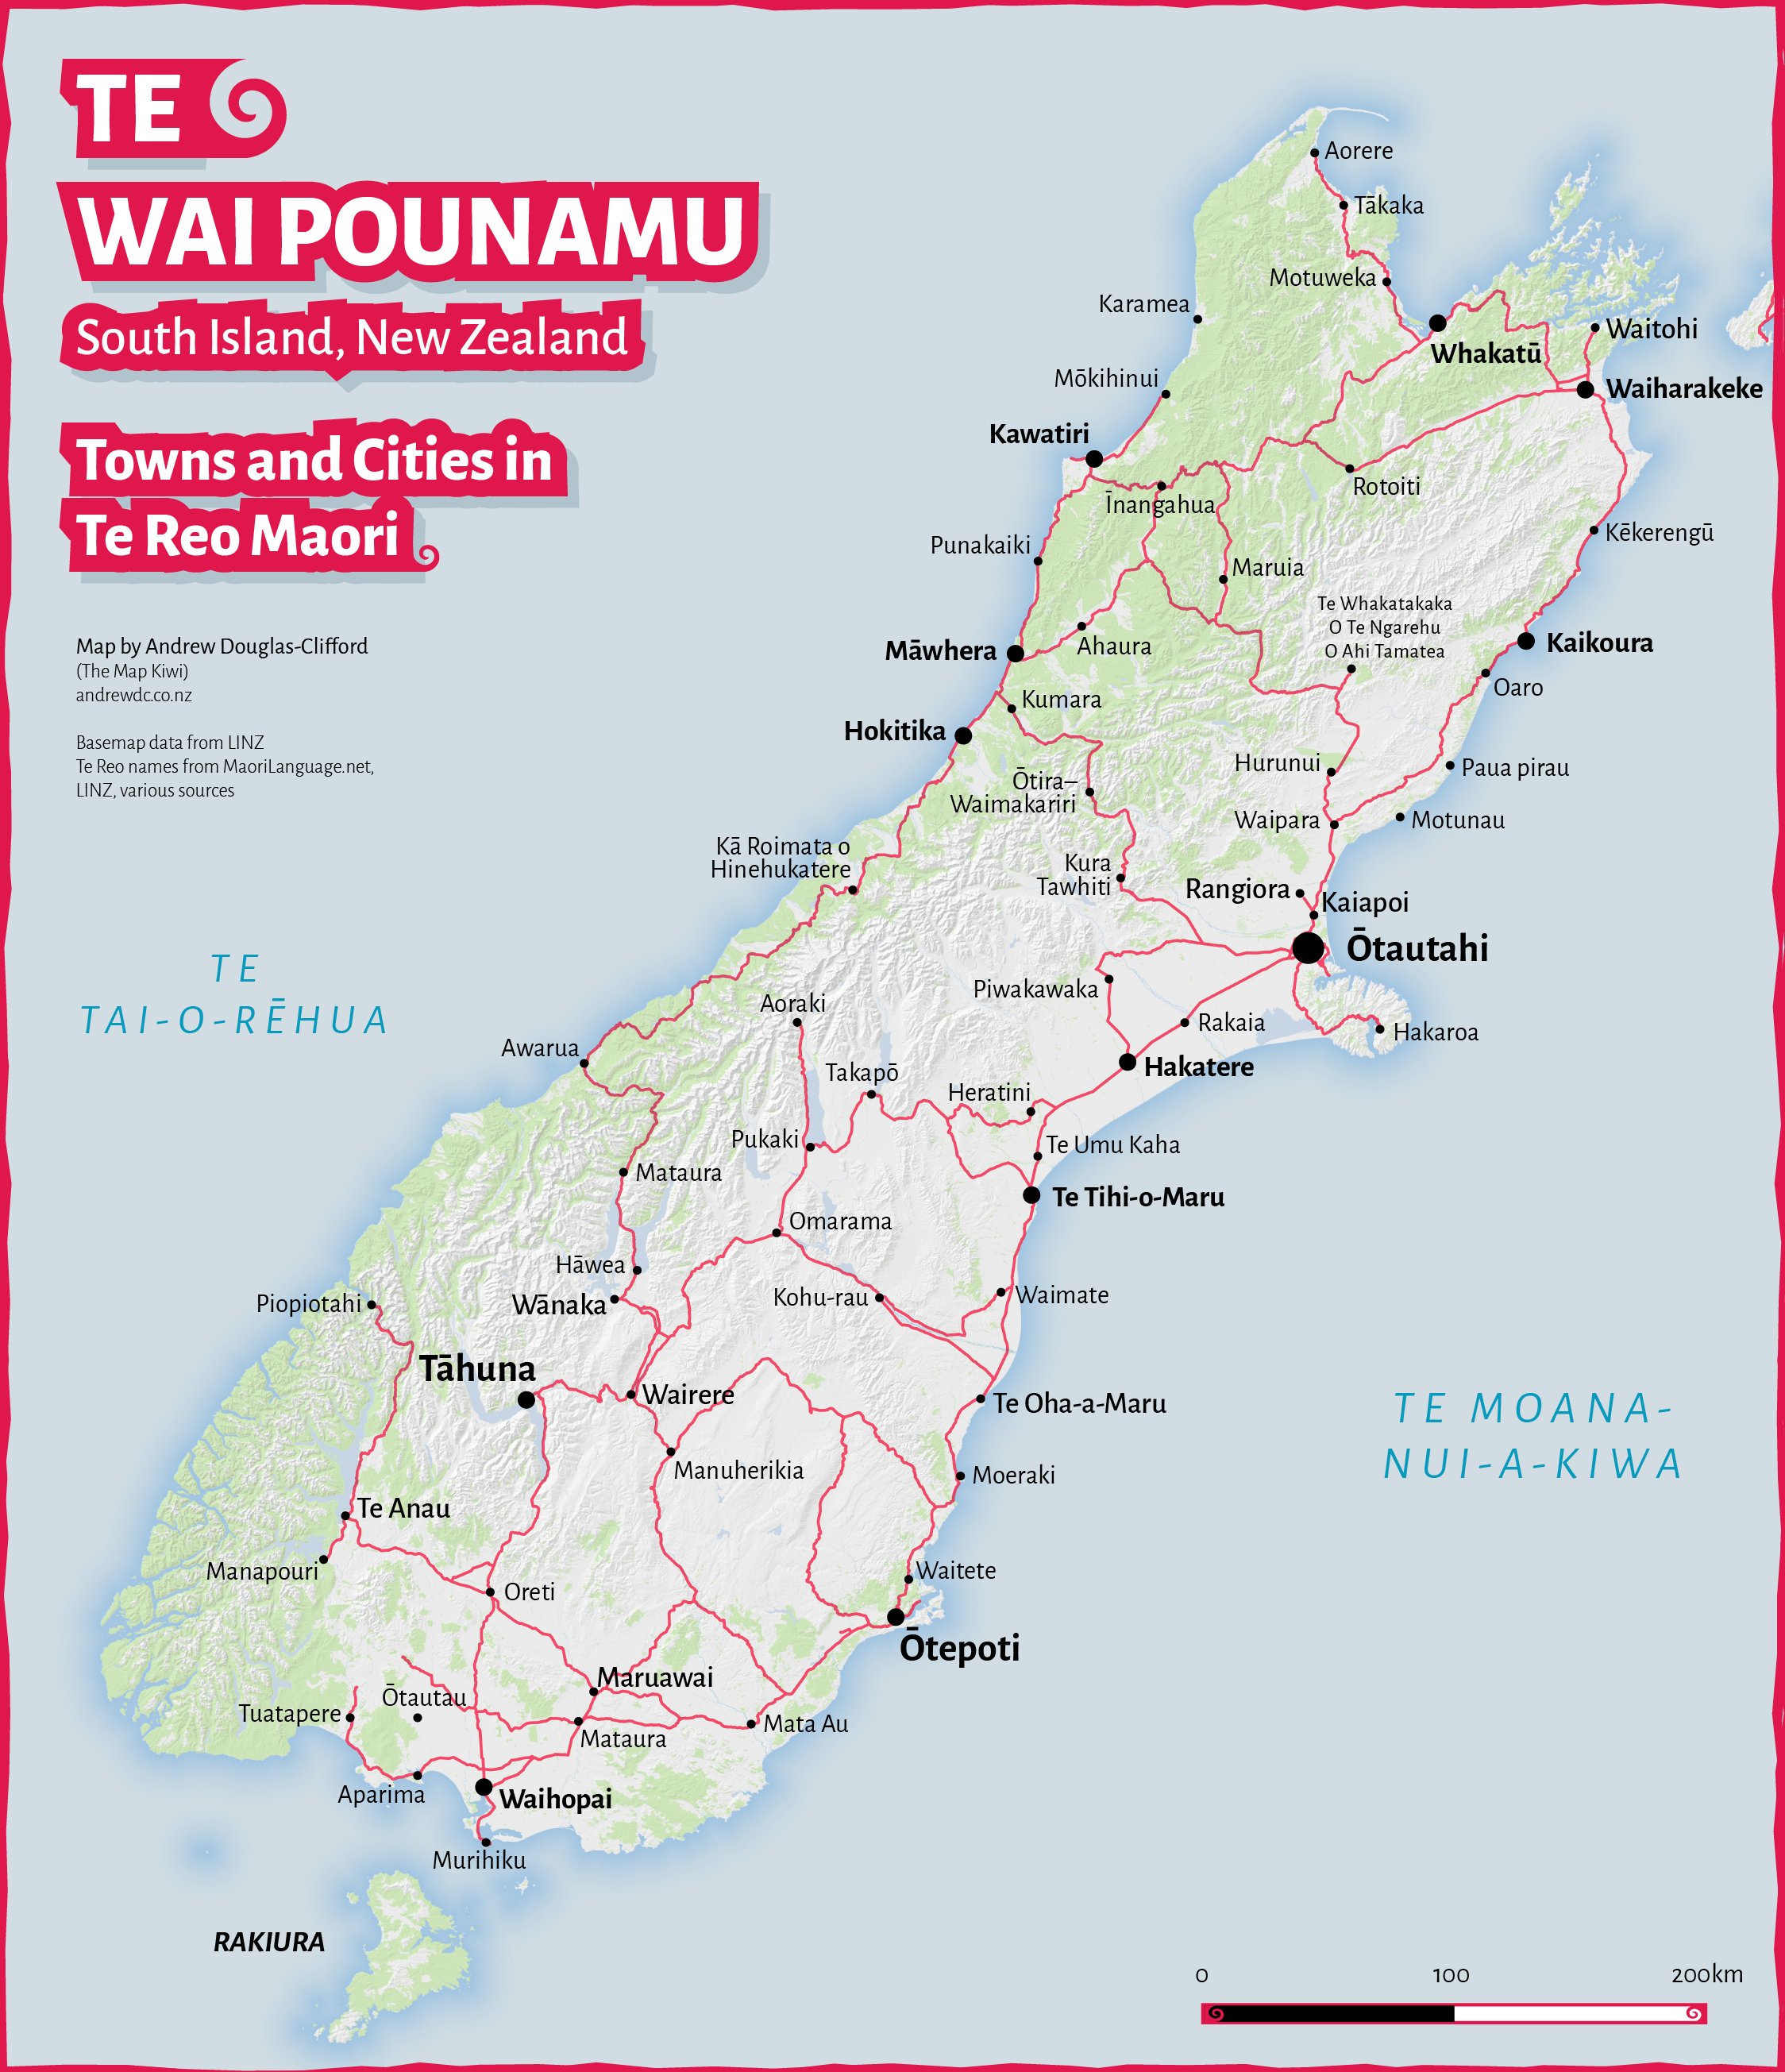 Map New Zealand South Island.Te Wai Pounamu Te Reo Maori Map Of South Island Towns And Cities